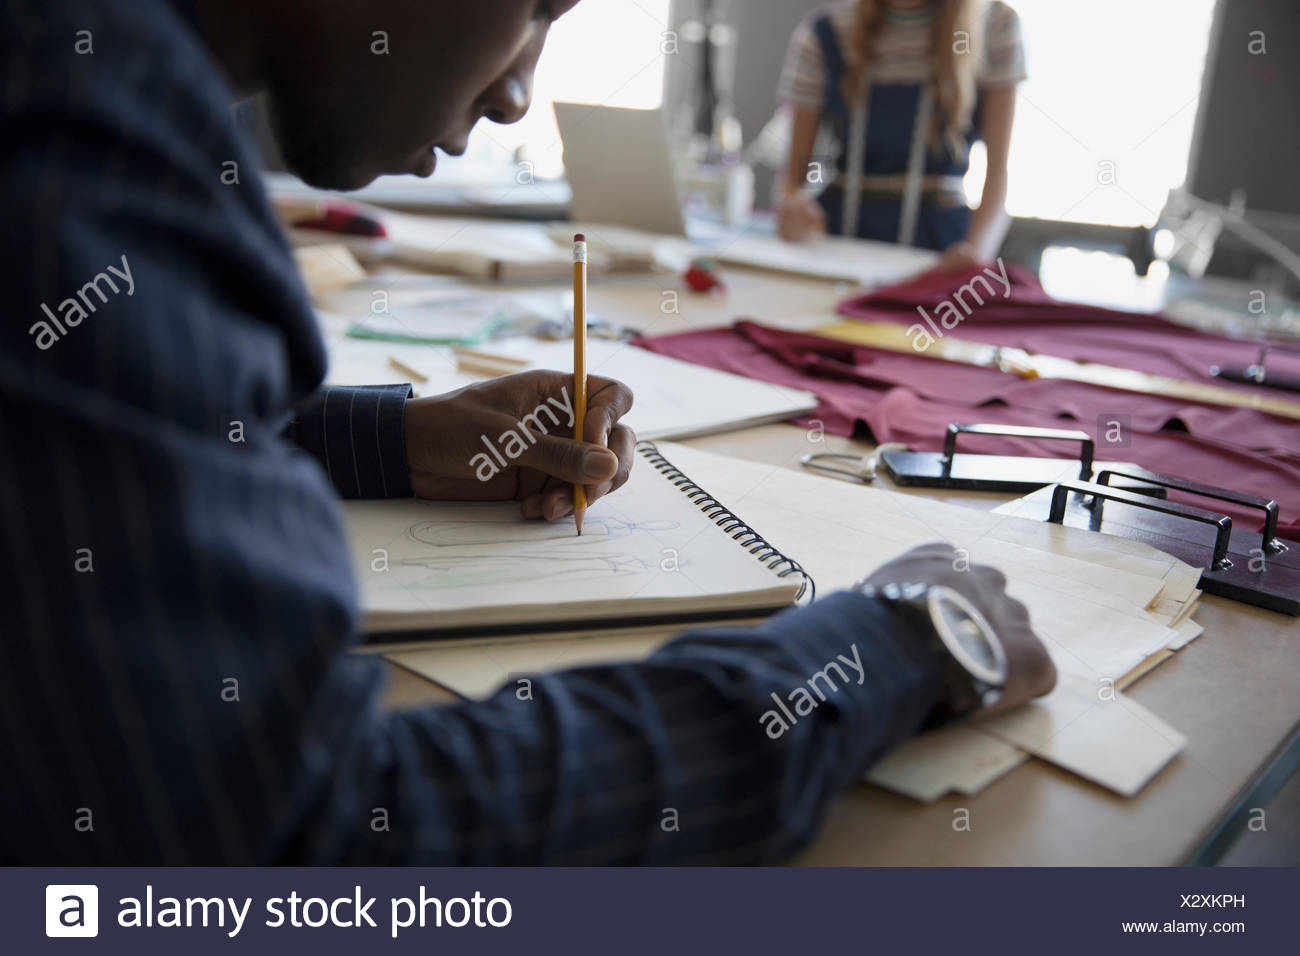 Étudiant en design de mode masculine au croquis workbench Photo Stock